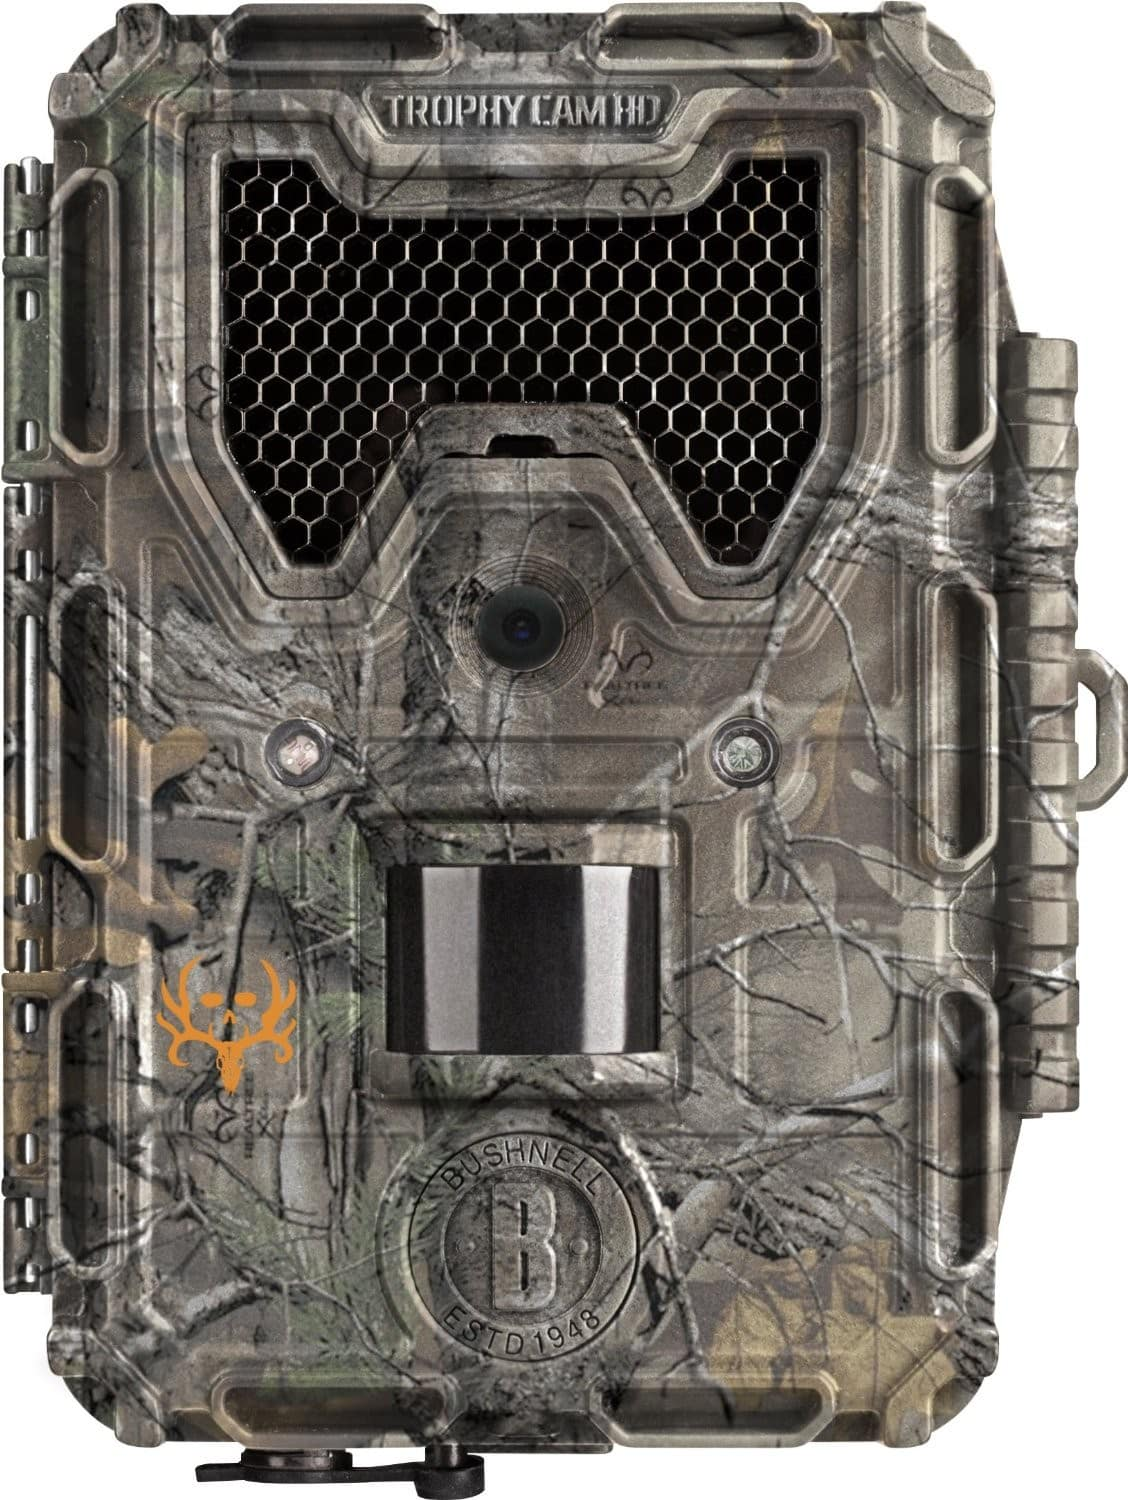 Bushnell 8MP Trophy Cam HD Bone Collector Edition Black LED Trail Camera with Night Vision